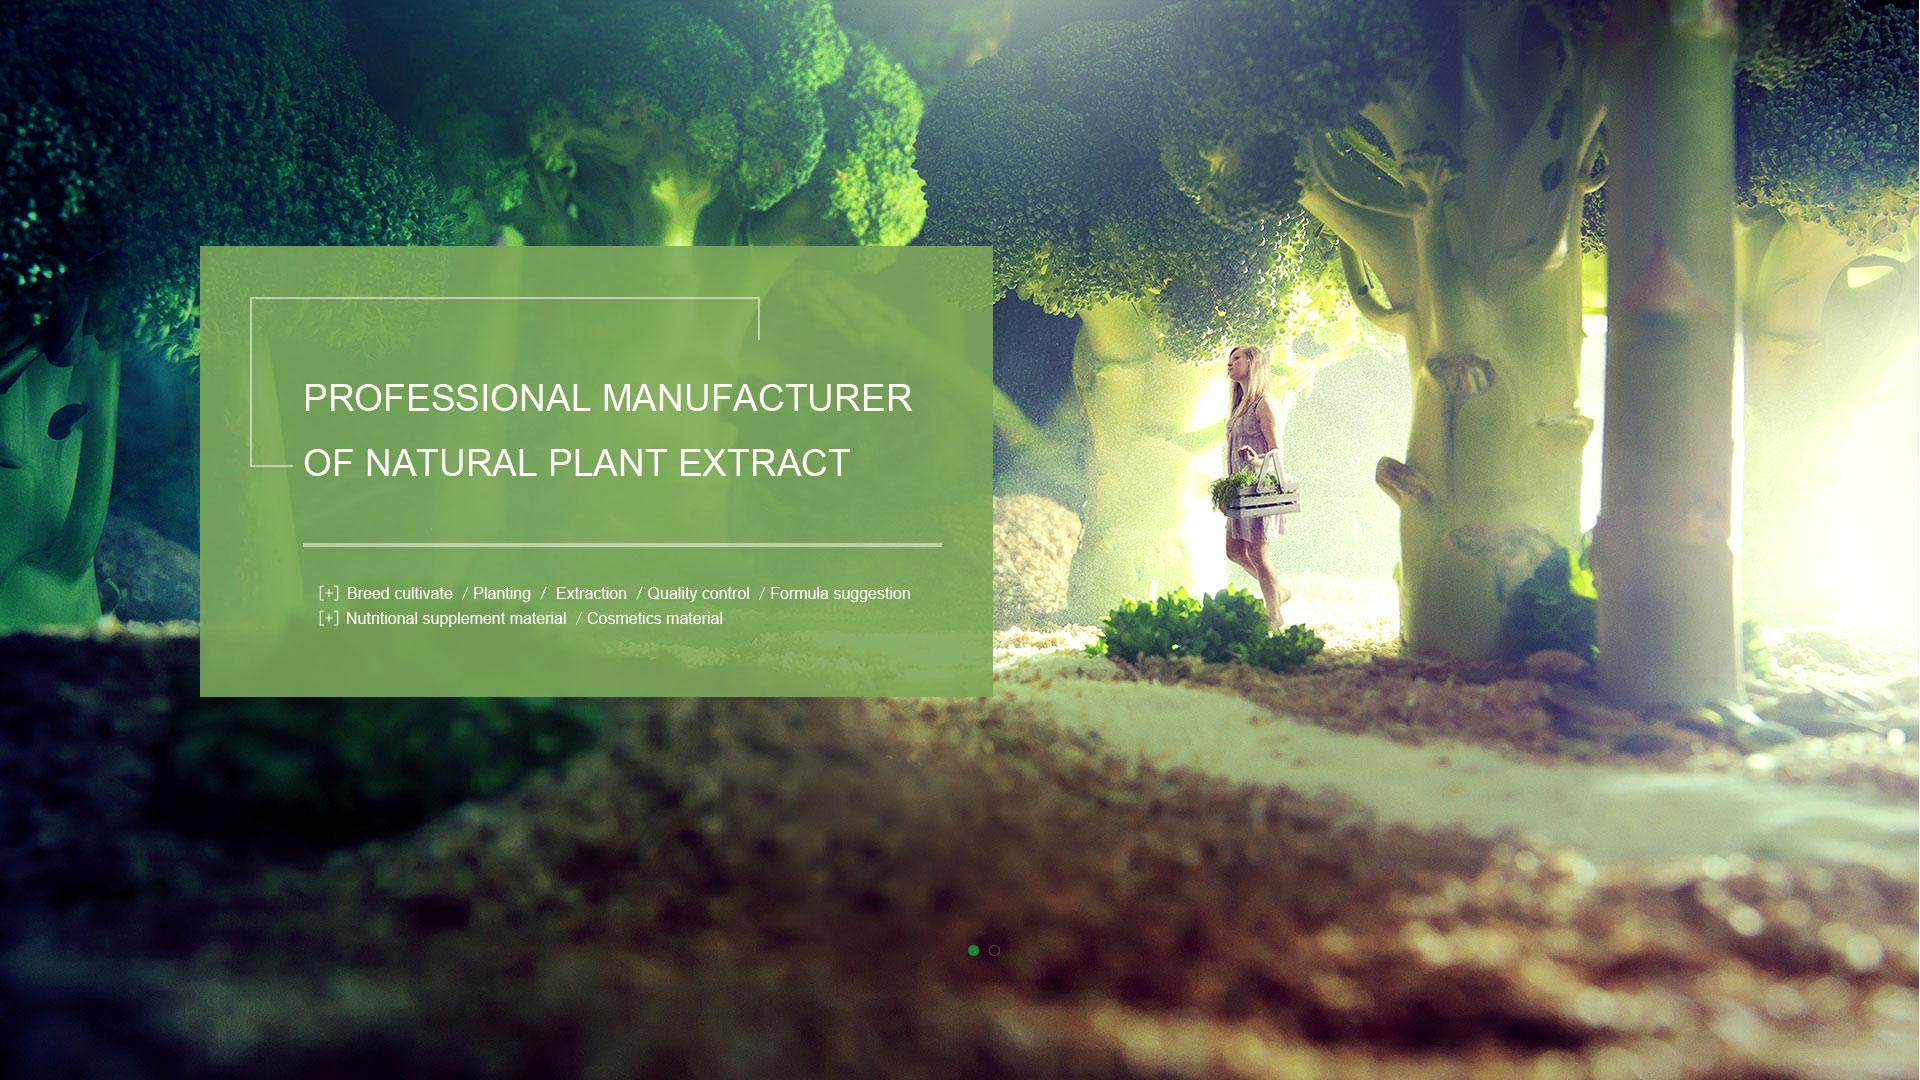 Professional manufacturer of natural plant extract